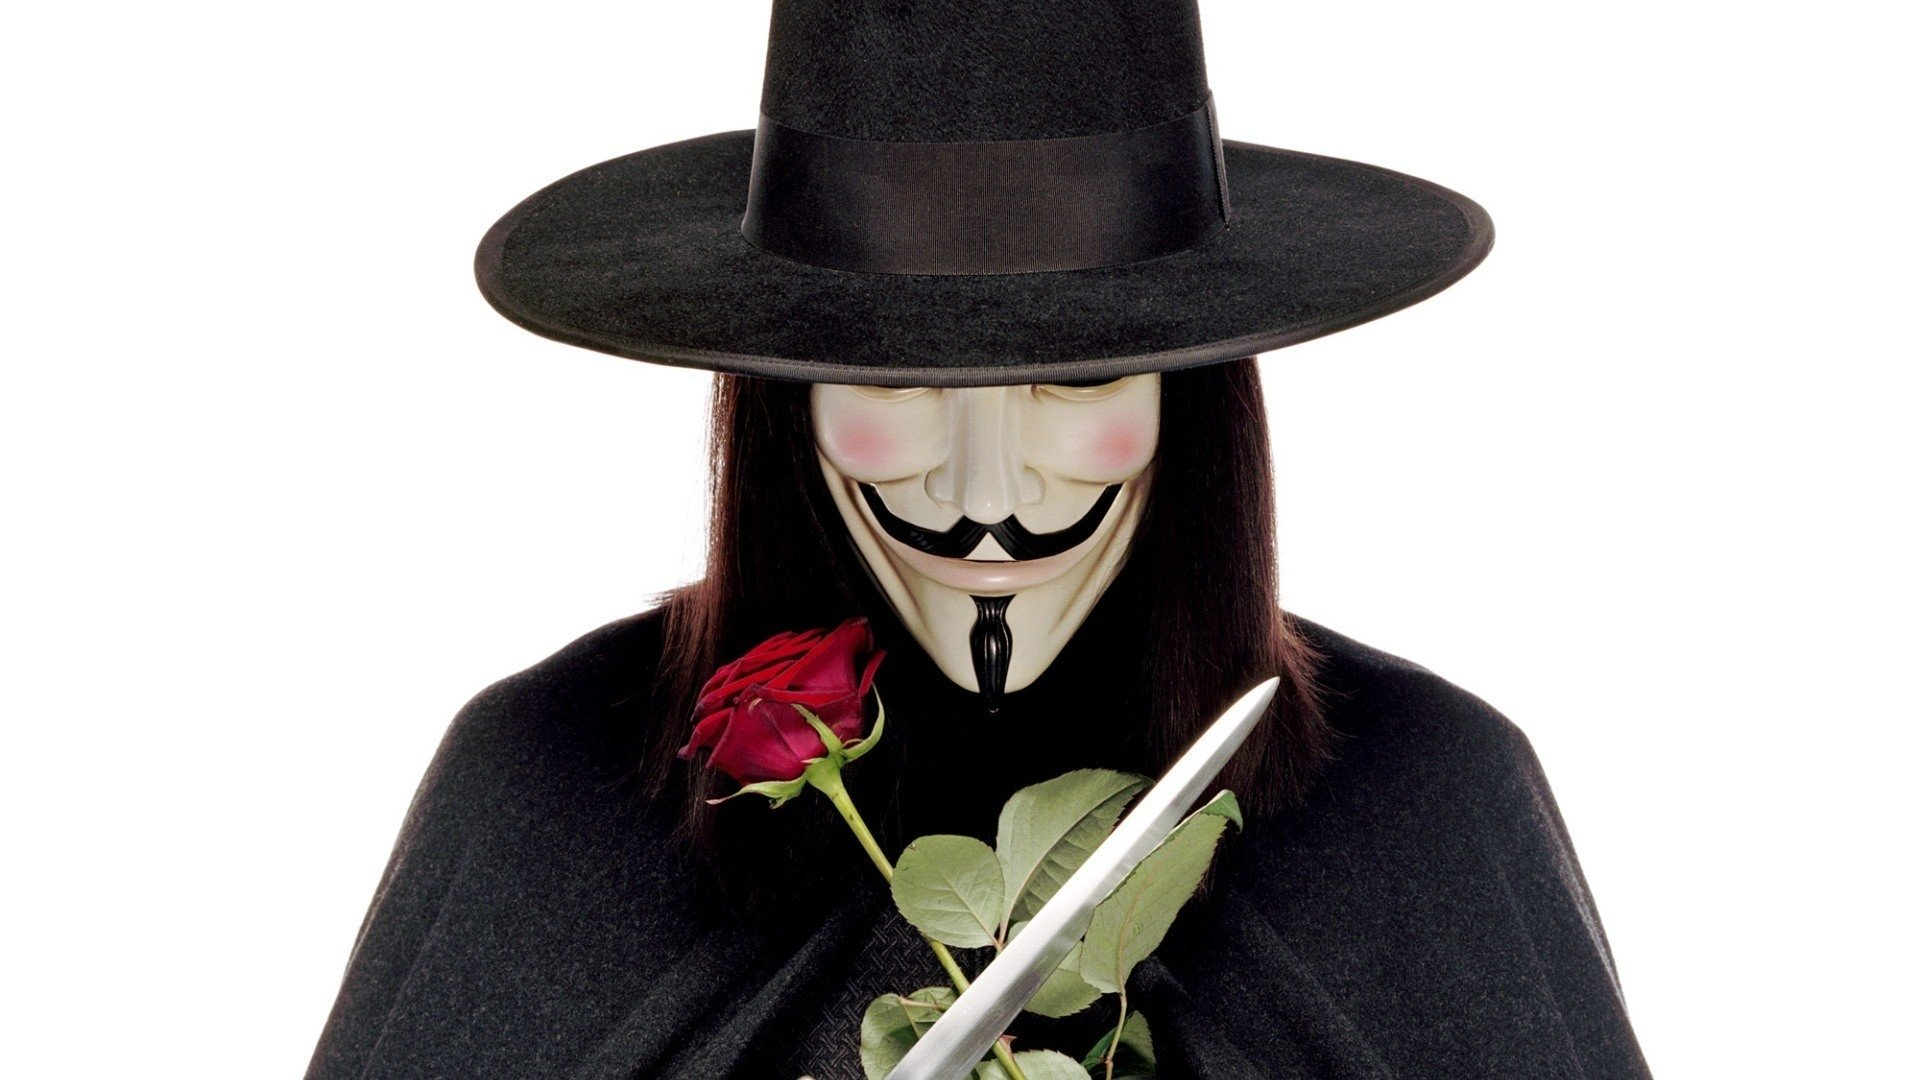 V For Vendetta Hd Wallpaper Background Image 1920x1080 Id